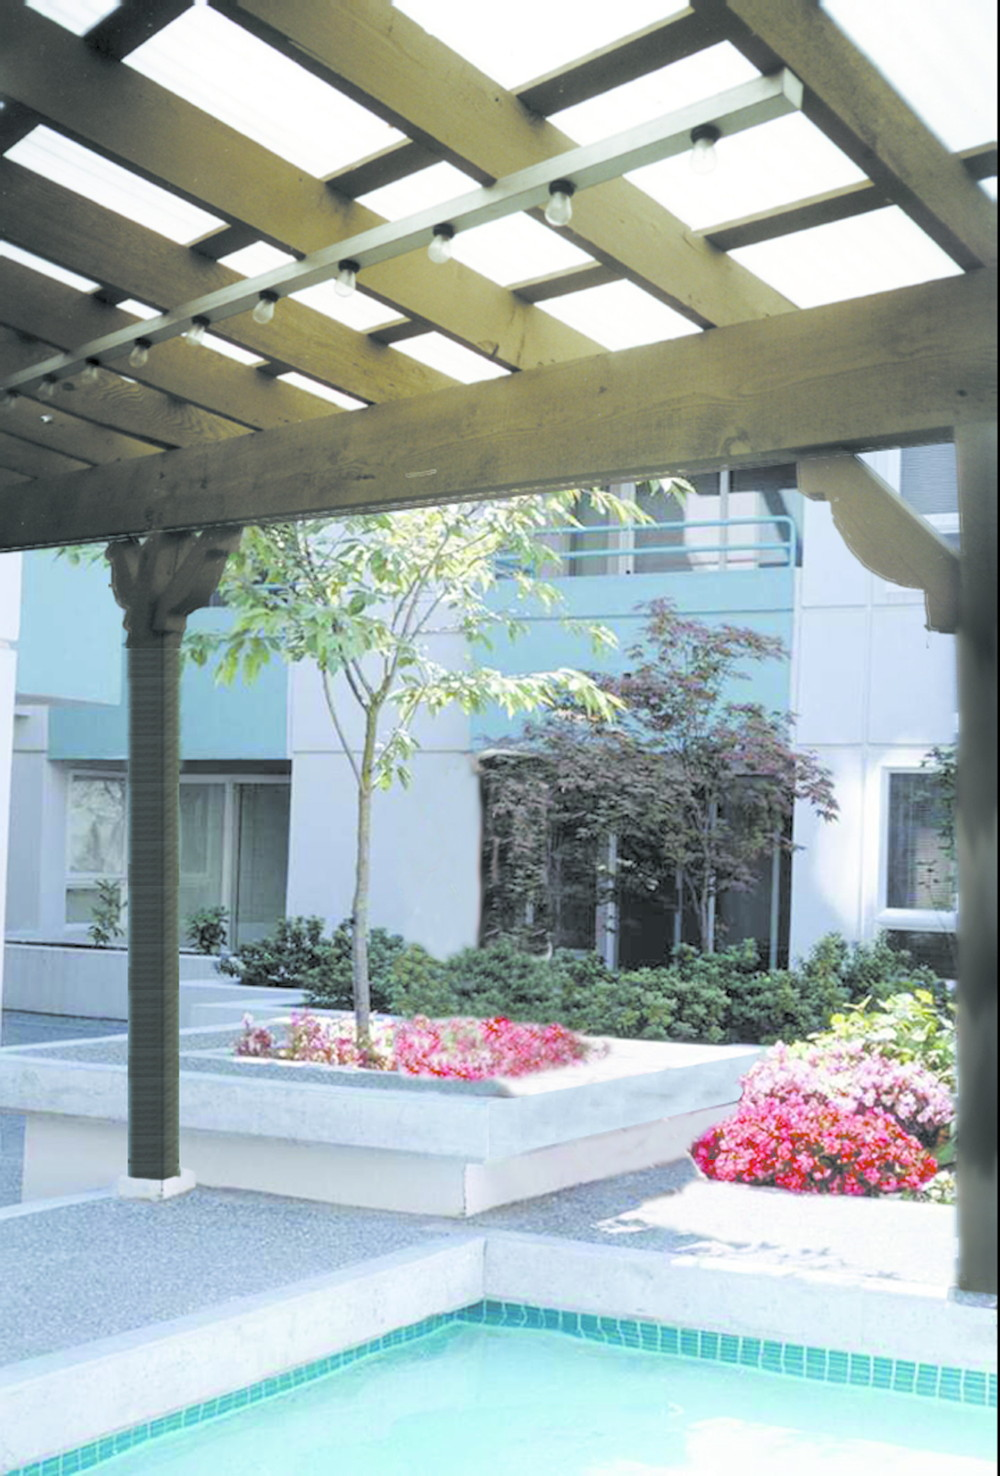 applications/commercial/commercial-canopies-light-roofing-4.jpg